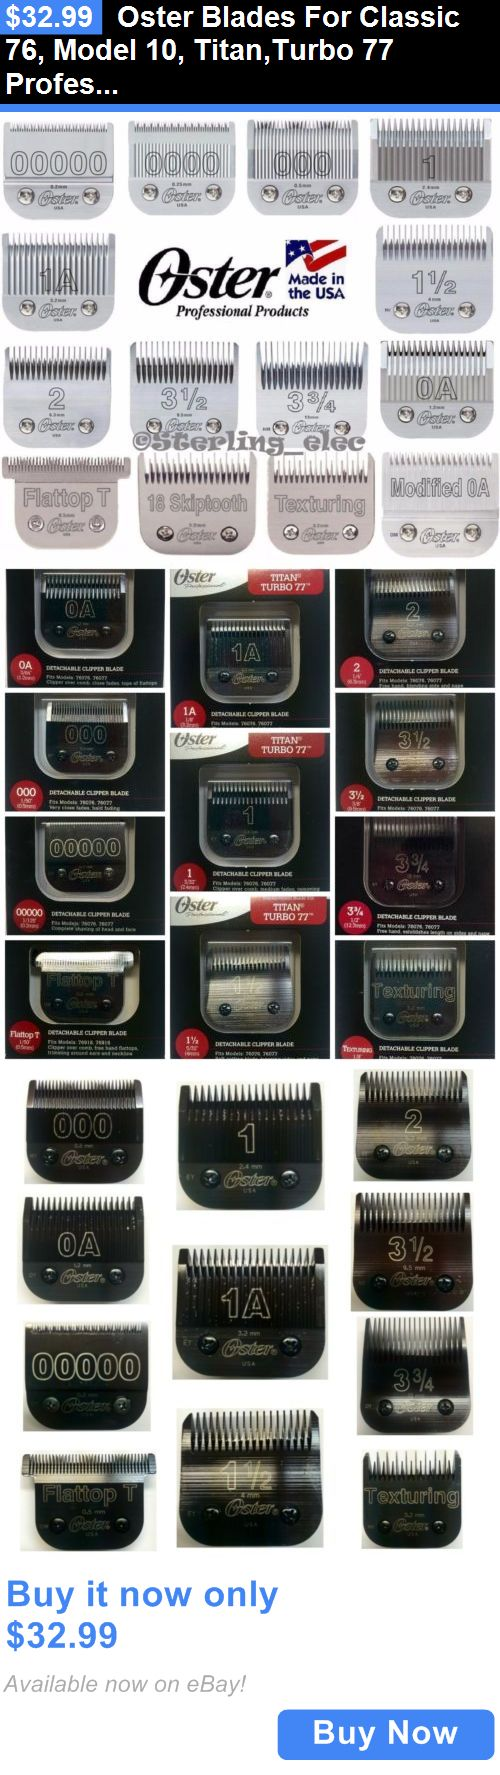 Clippers And Trimmers Oster Blades For Classic 76 Model 10 Titan Turbo 77 Professional Hair Clippers Buy It Hair Clippers Hair Straightening Iron Model Hair